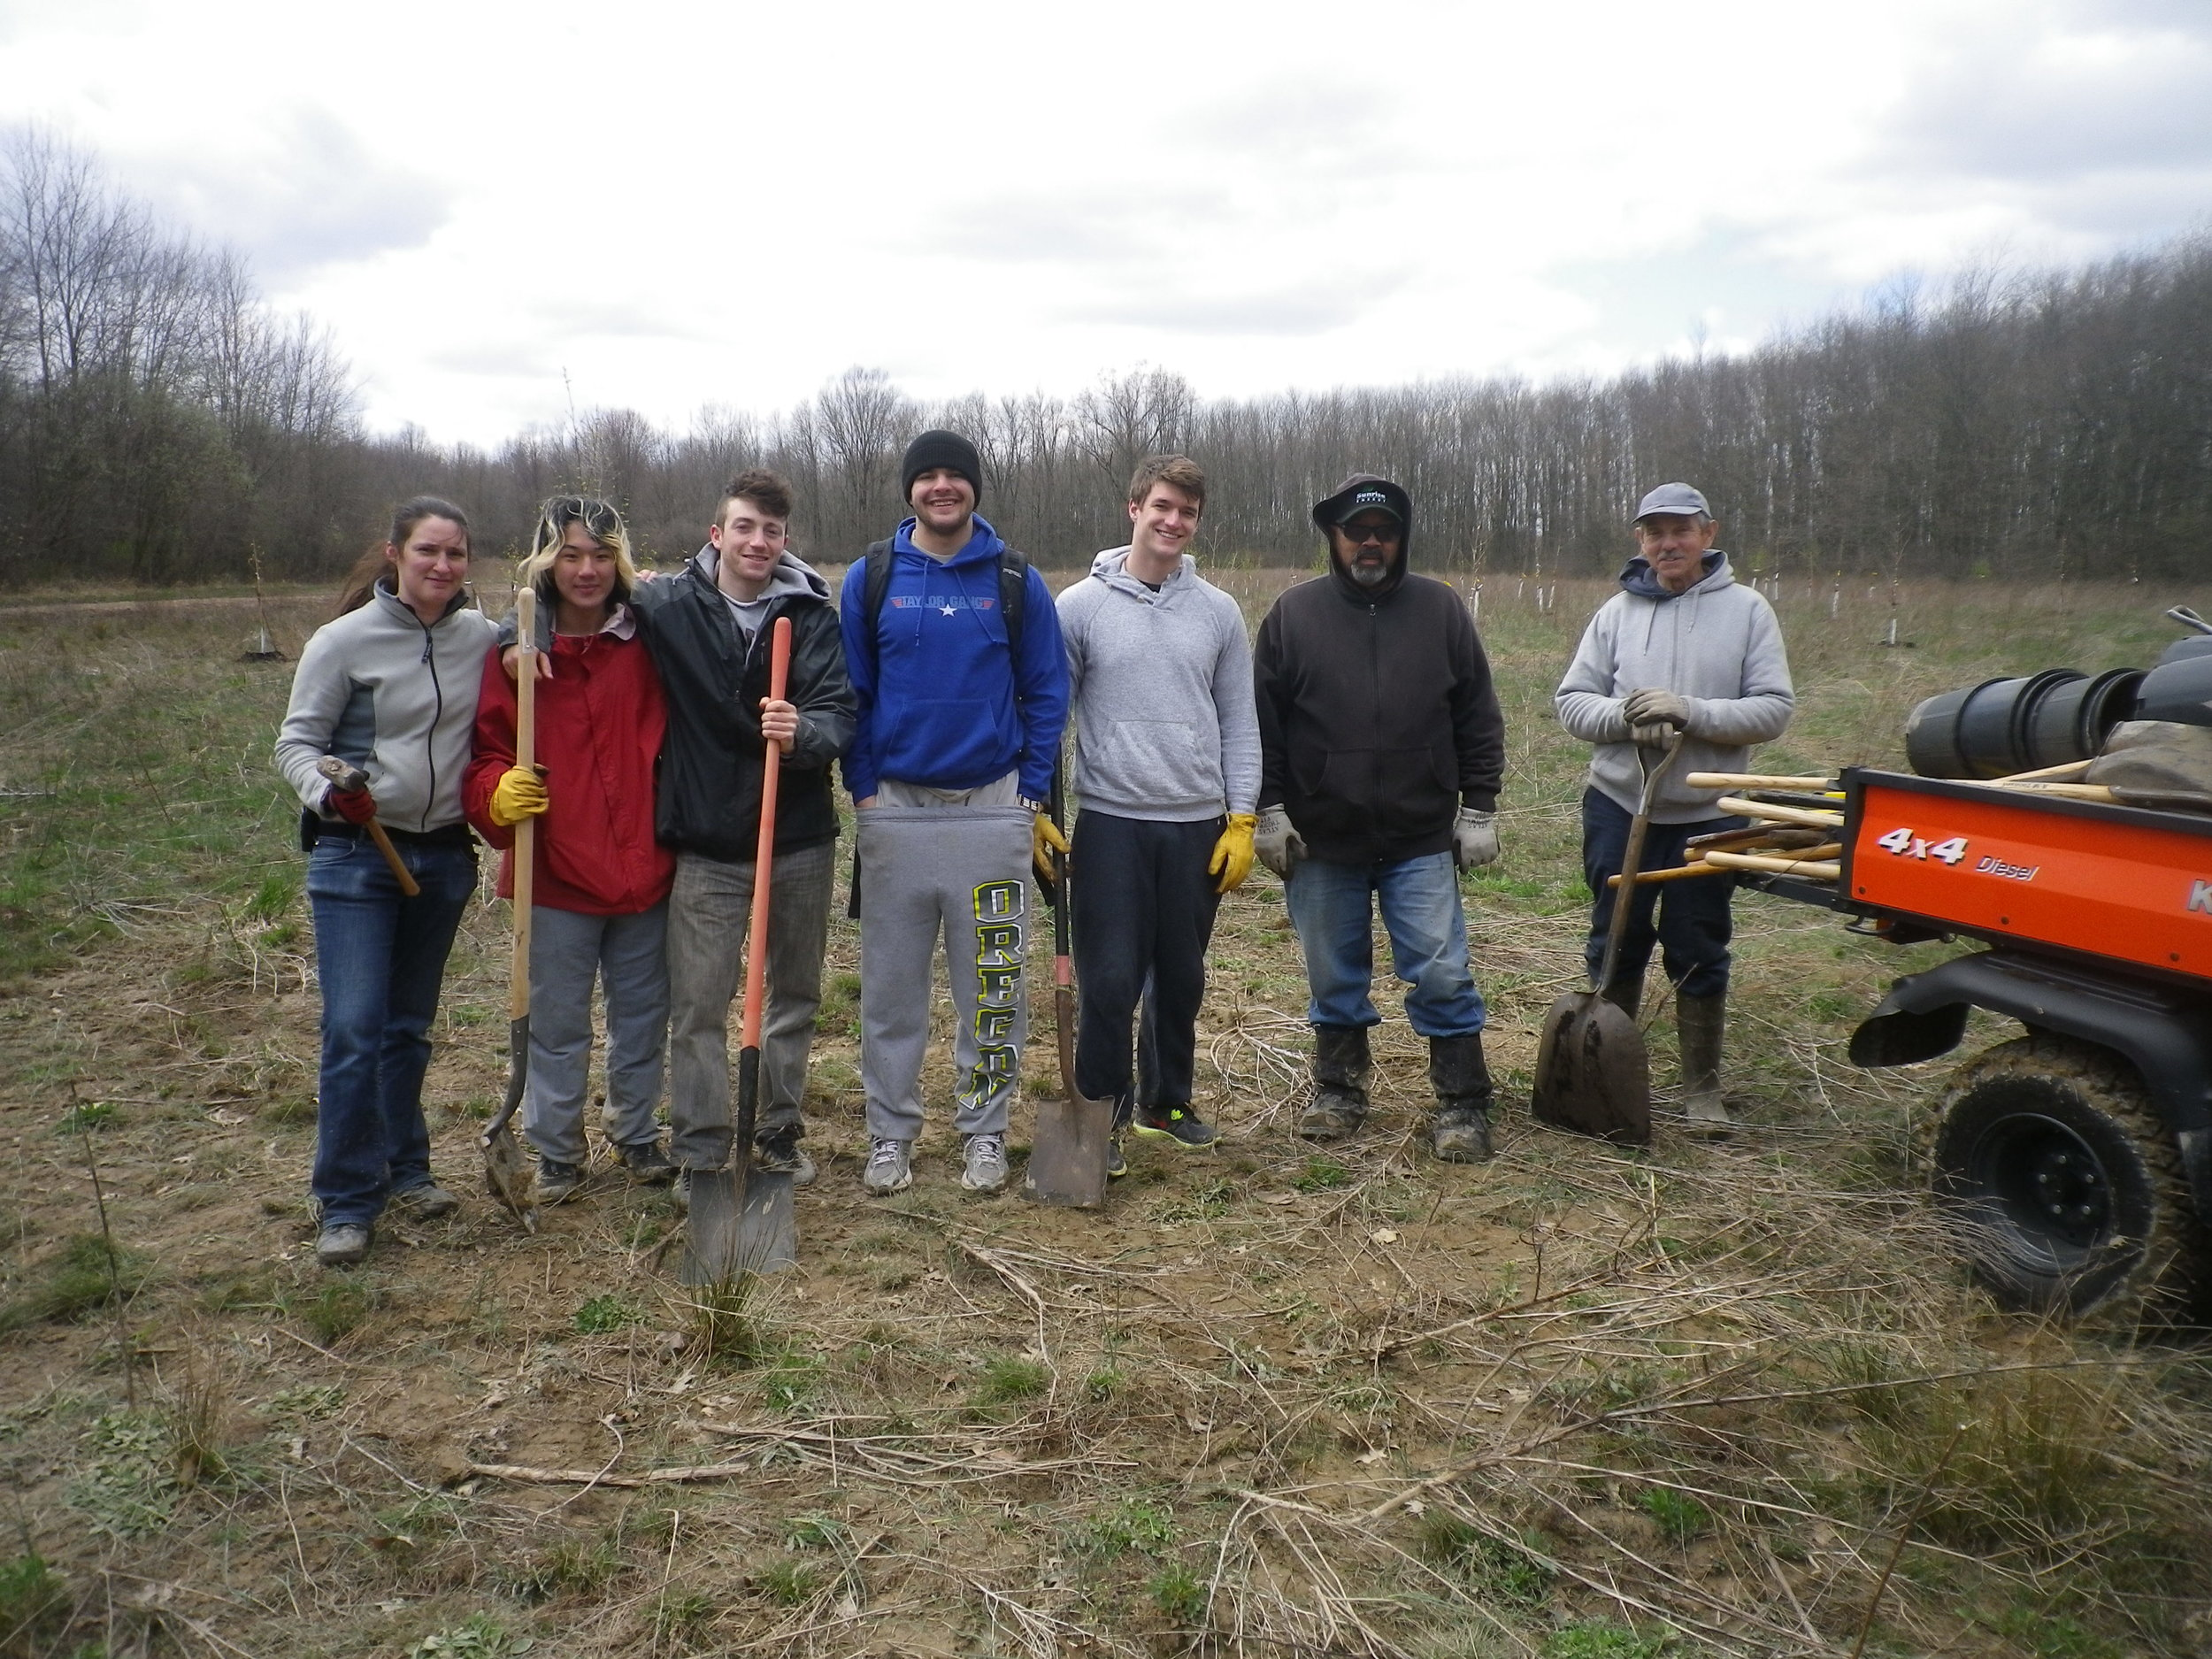 Student project organizers, volunteers and Oberlin College Grounds Staff planted trees to initiate the Afforestation Project.